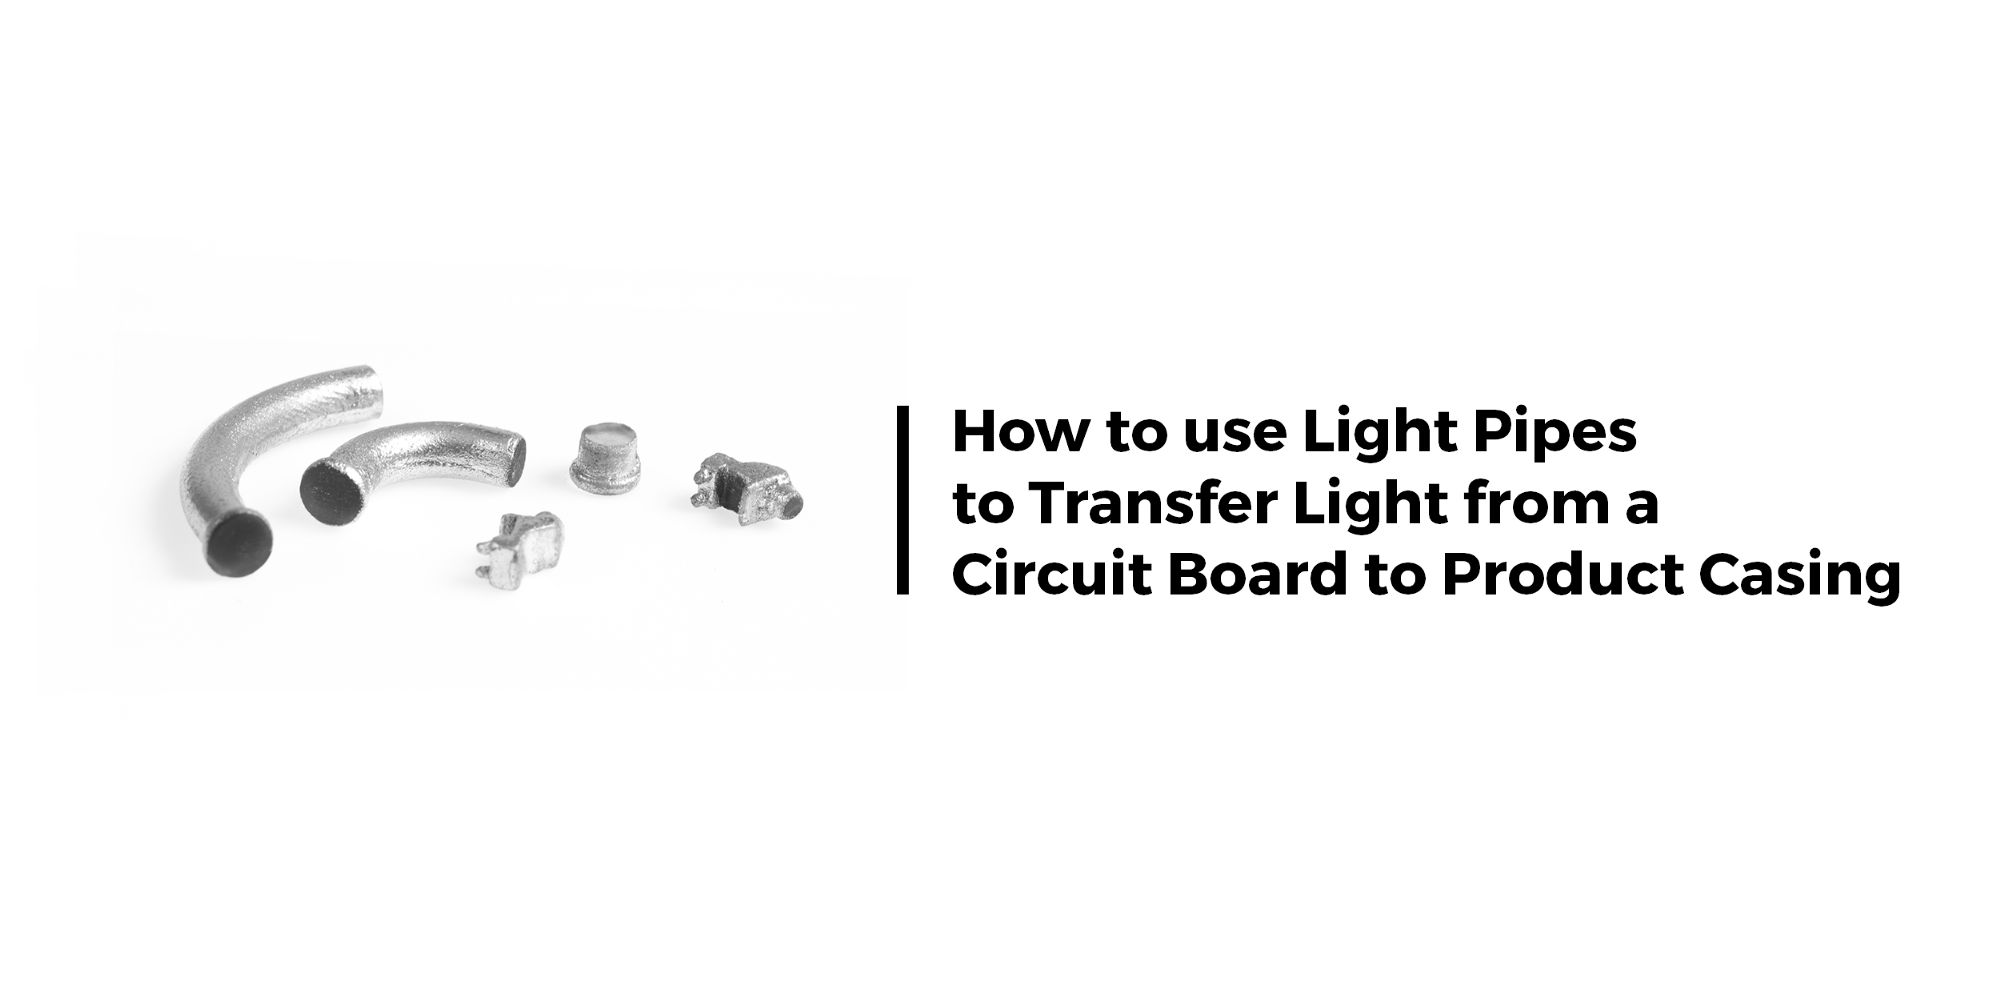 How To Use Light Pipes To Transfer Light From A Circuit